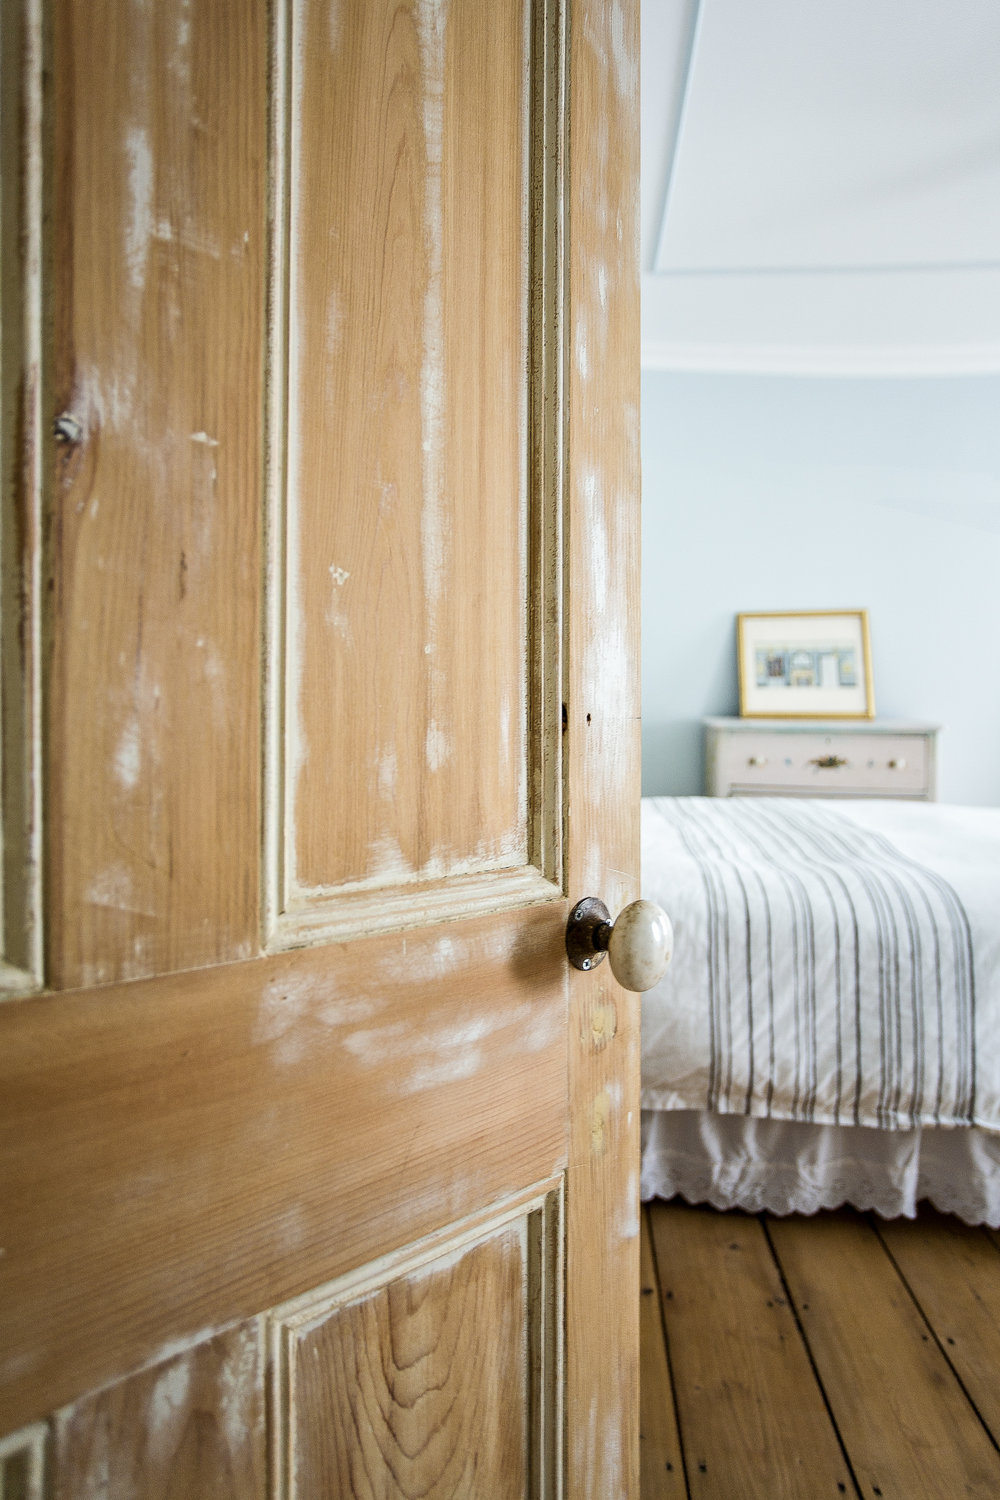 Southampton bedroom aged wood door